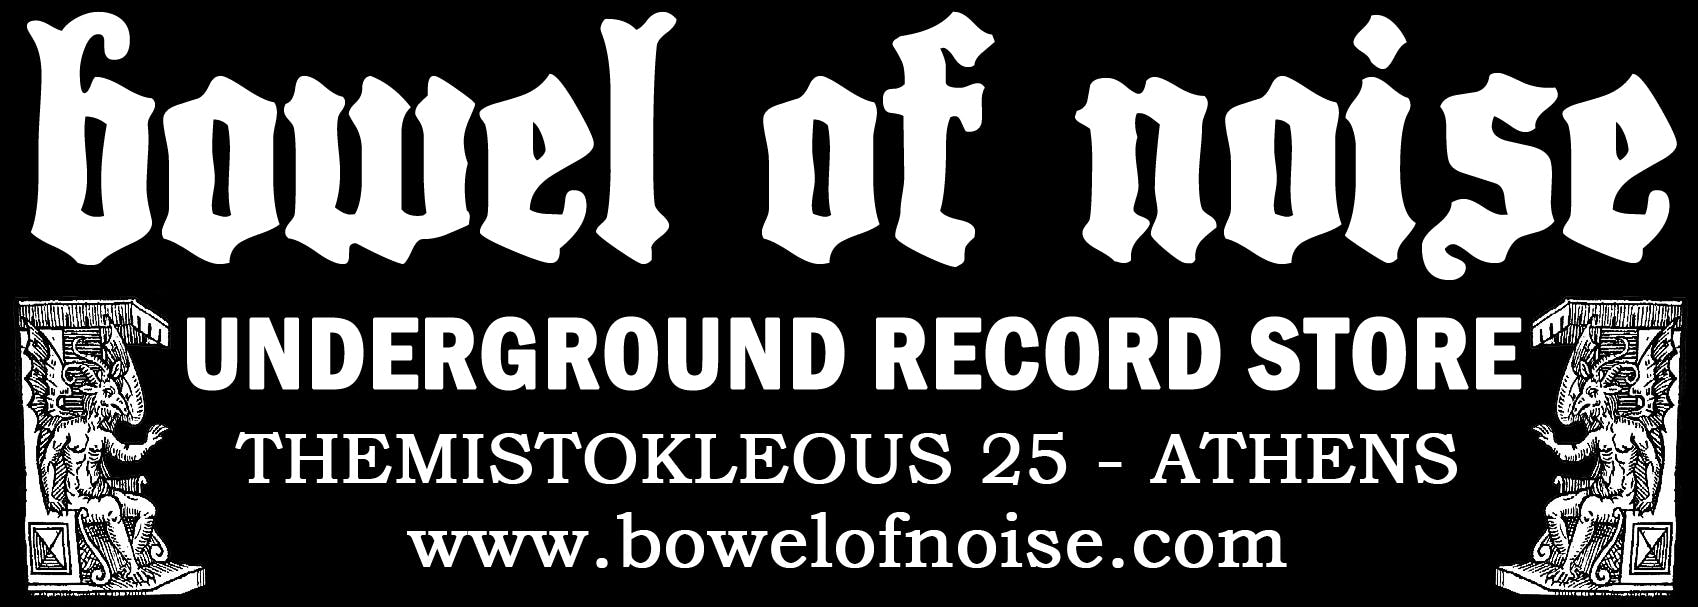 Bowel of Noise - Record Store Image